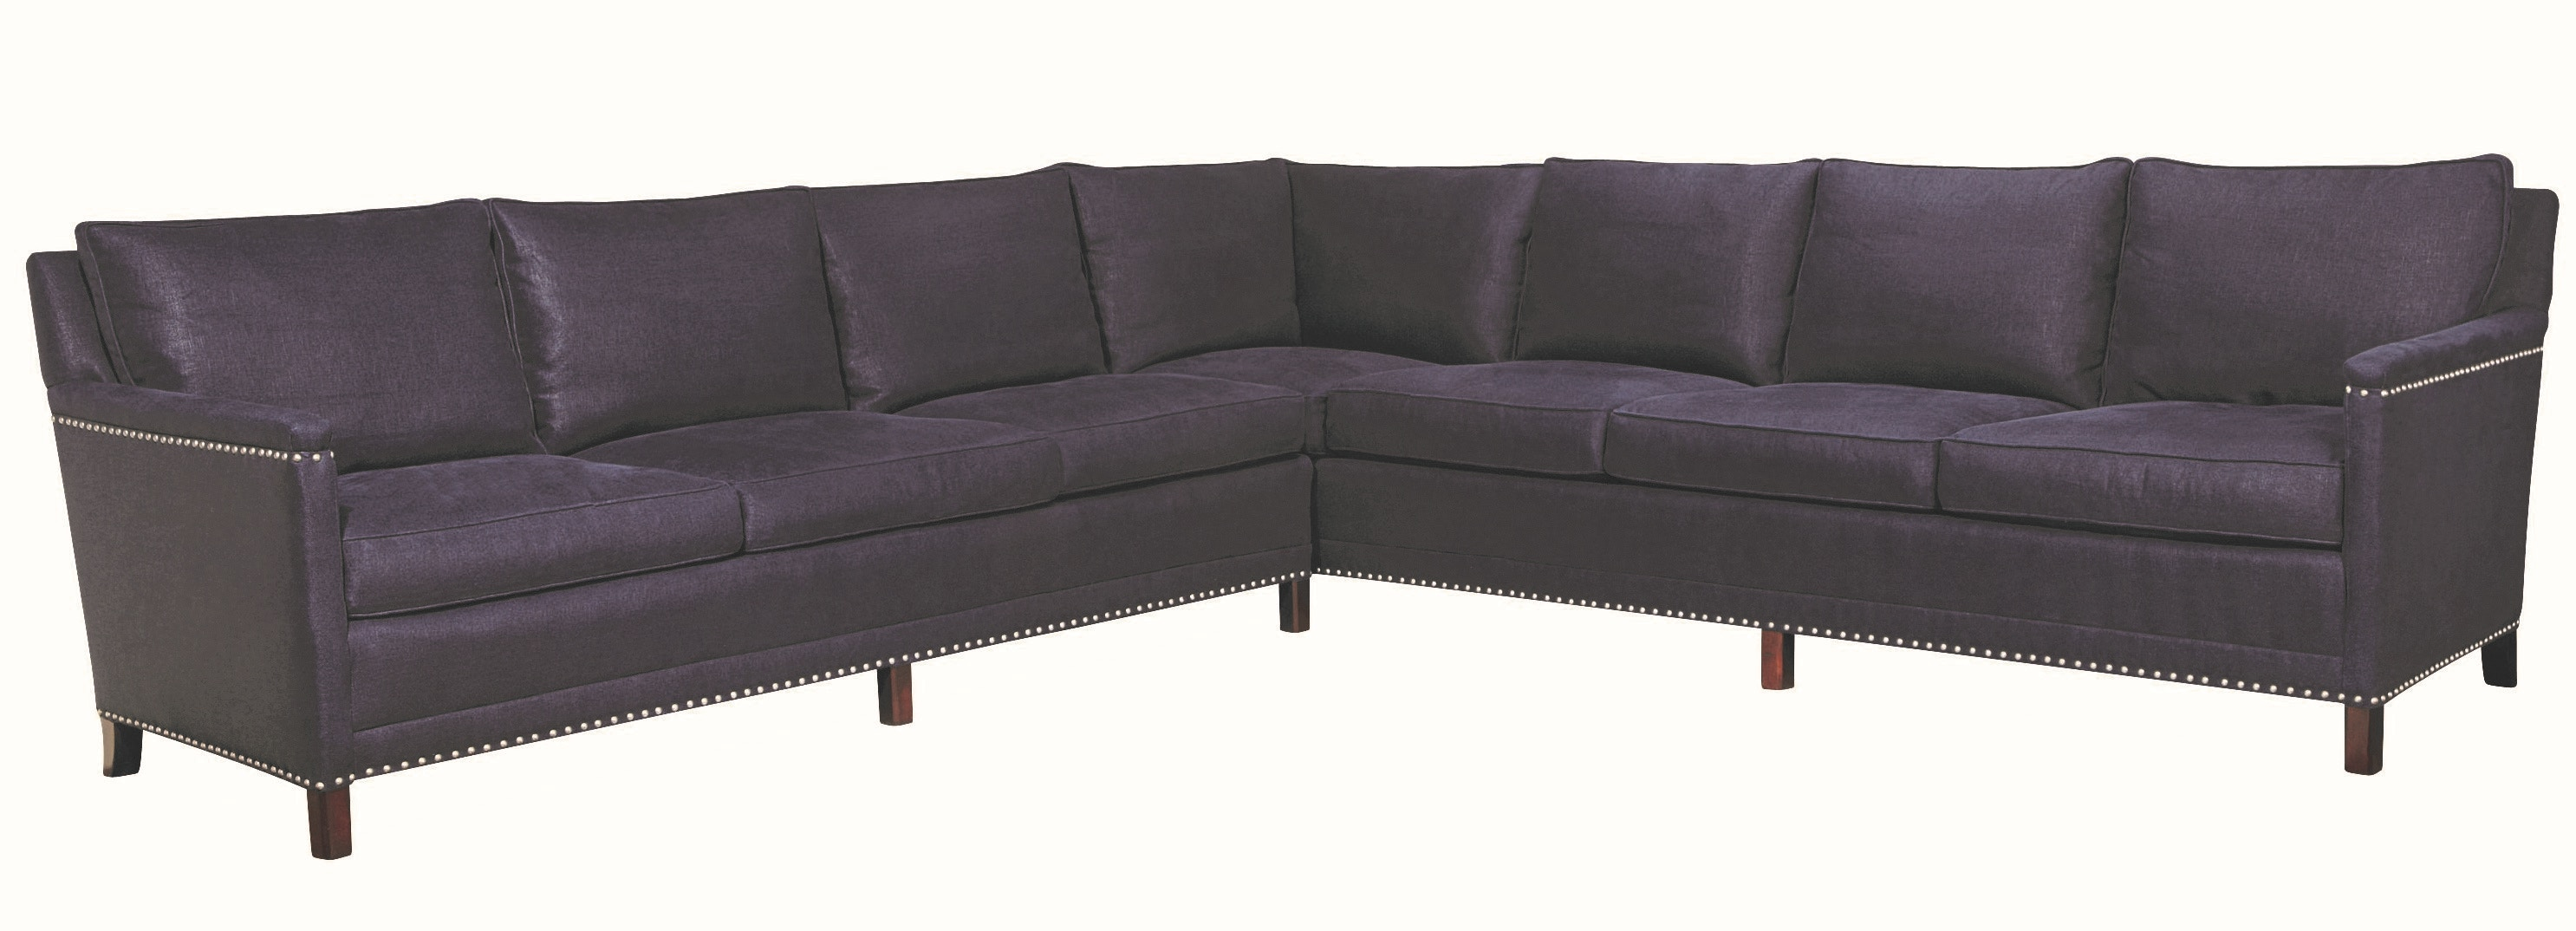 Lee Industries Four Cushion Cornering Sofa 1935 28LF